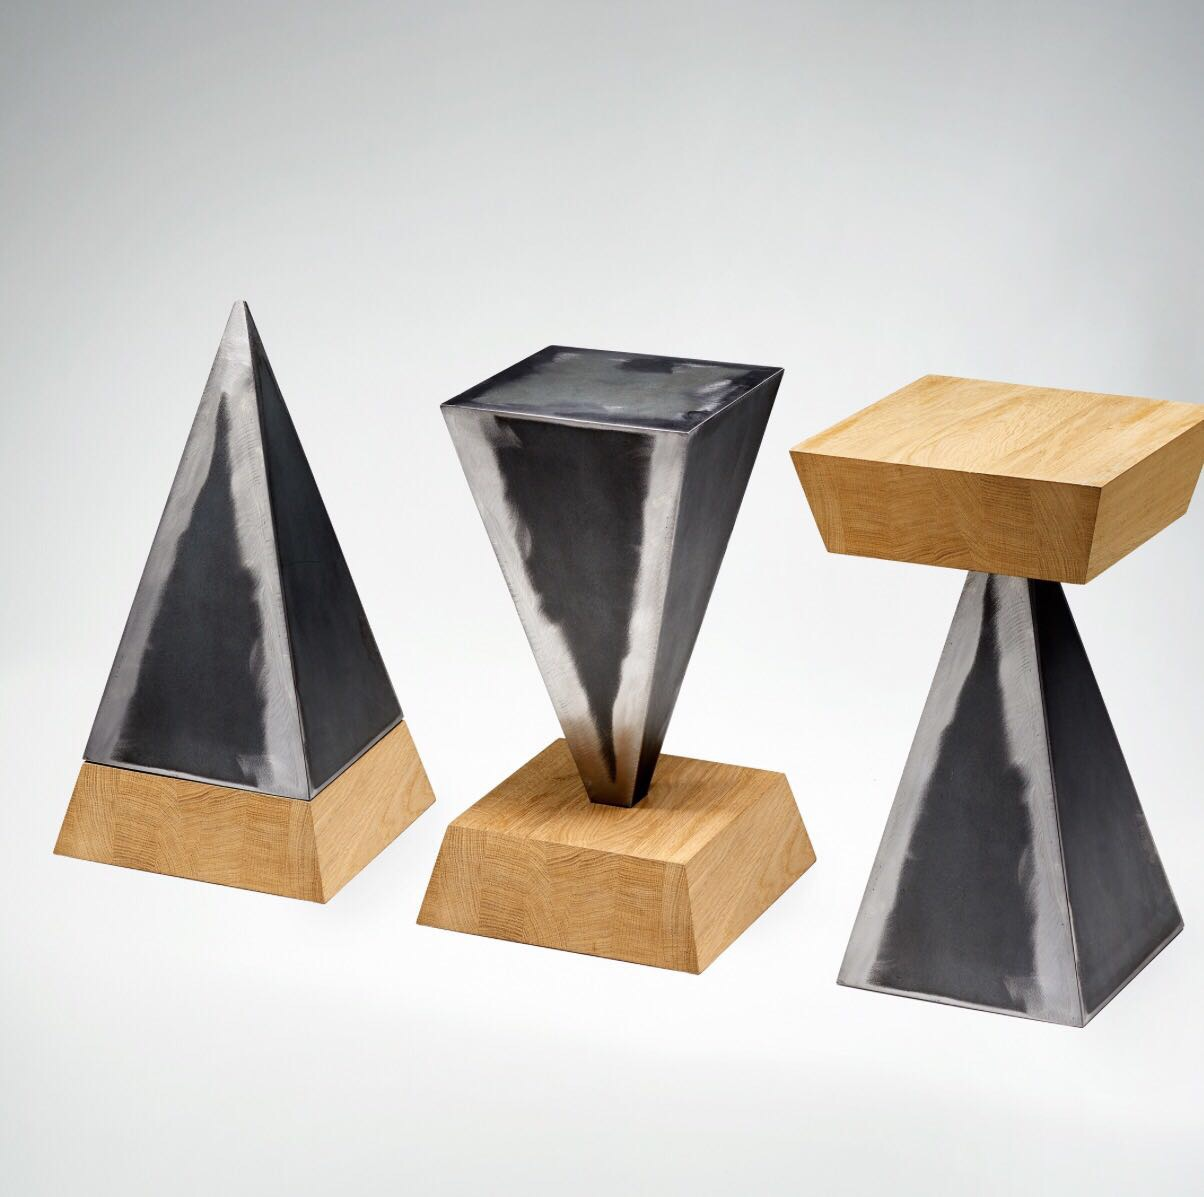 Industrial Design - The Pyramid Table